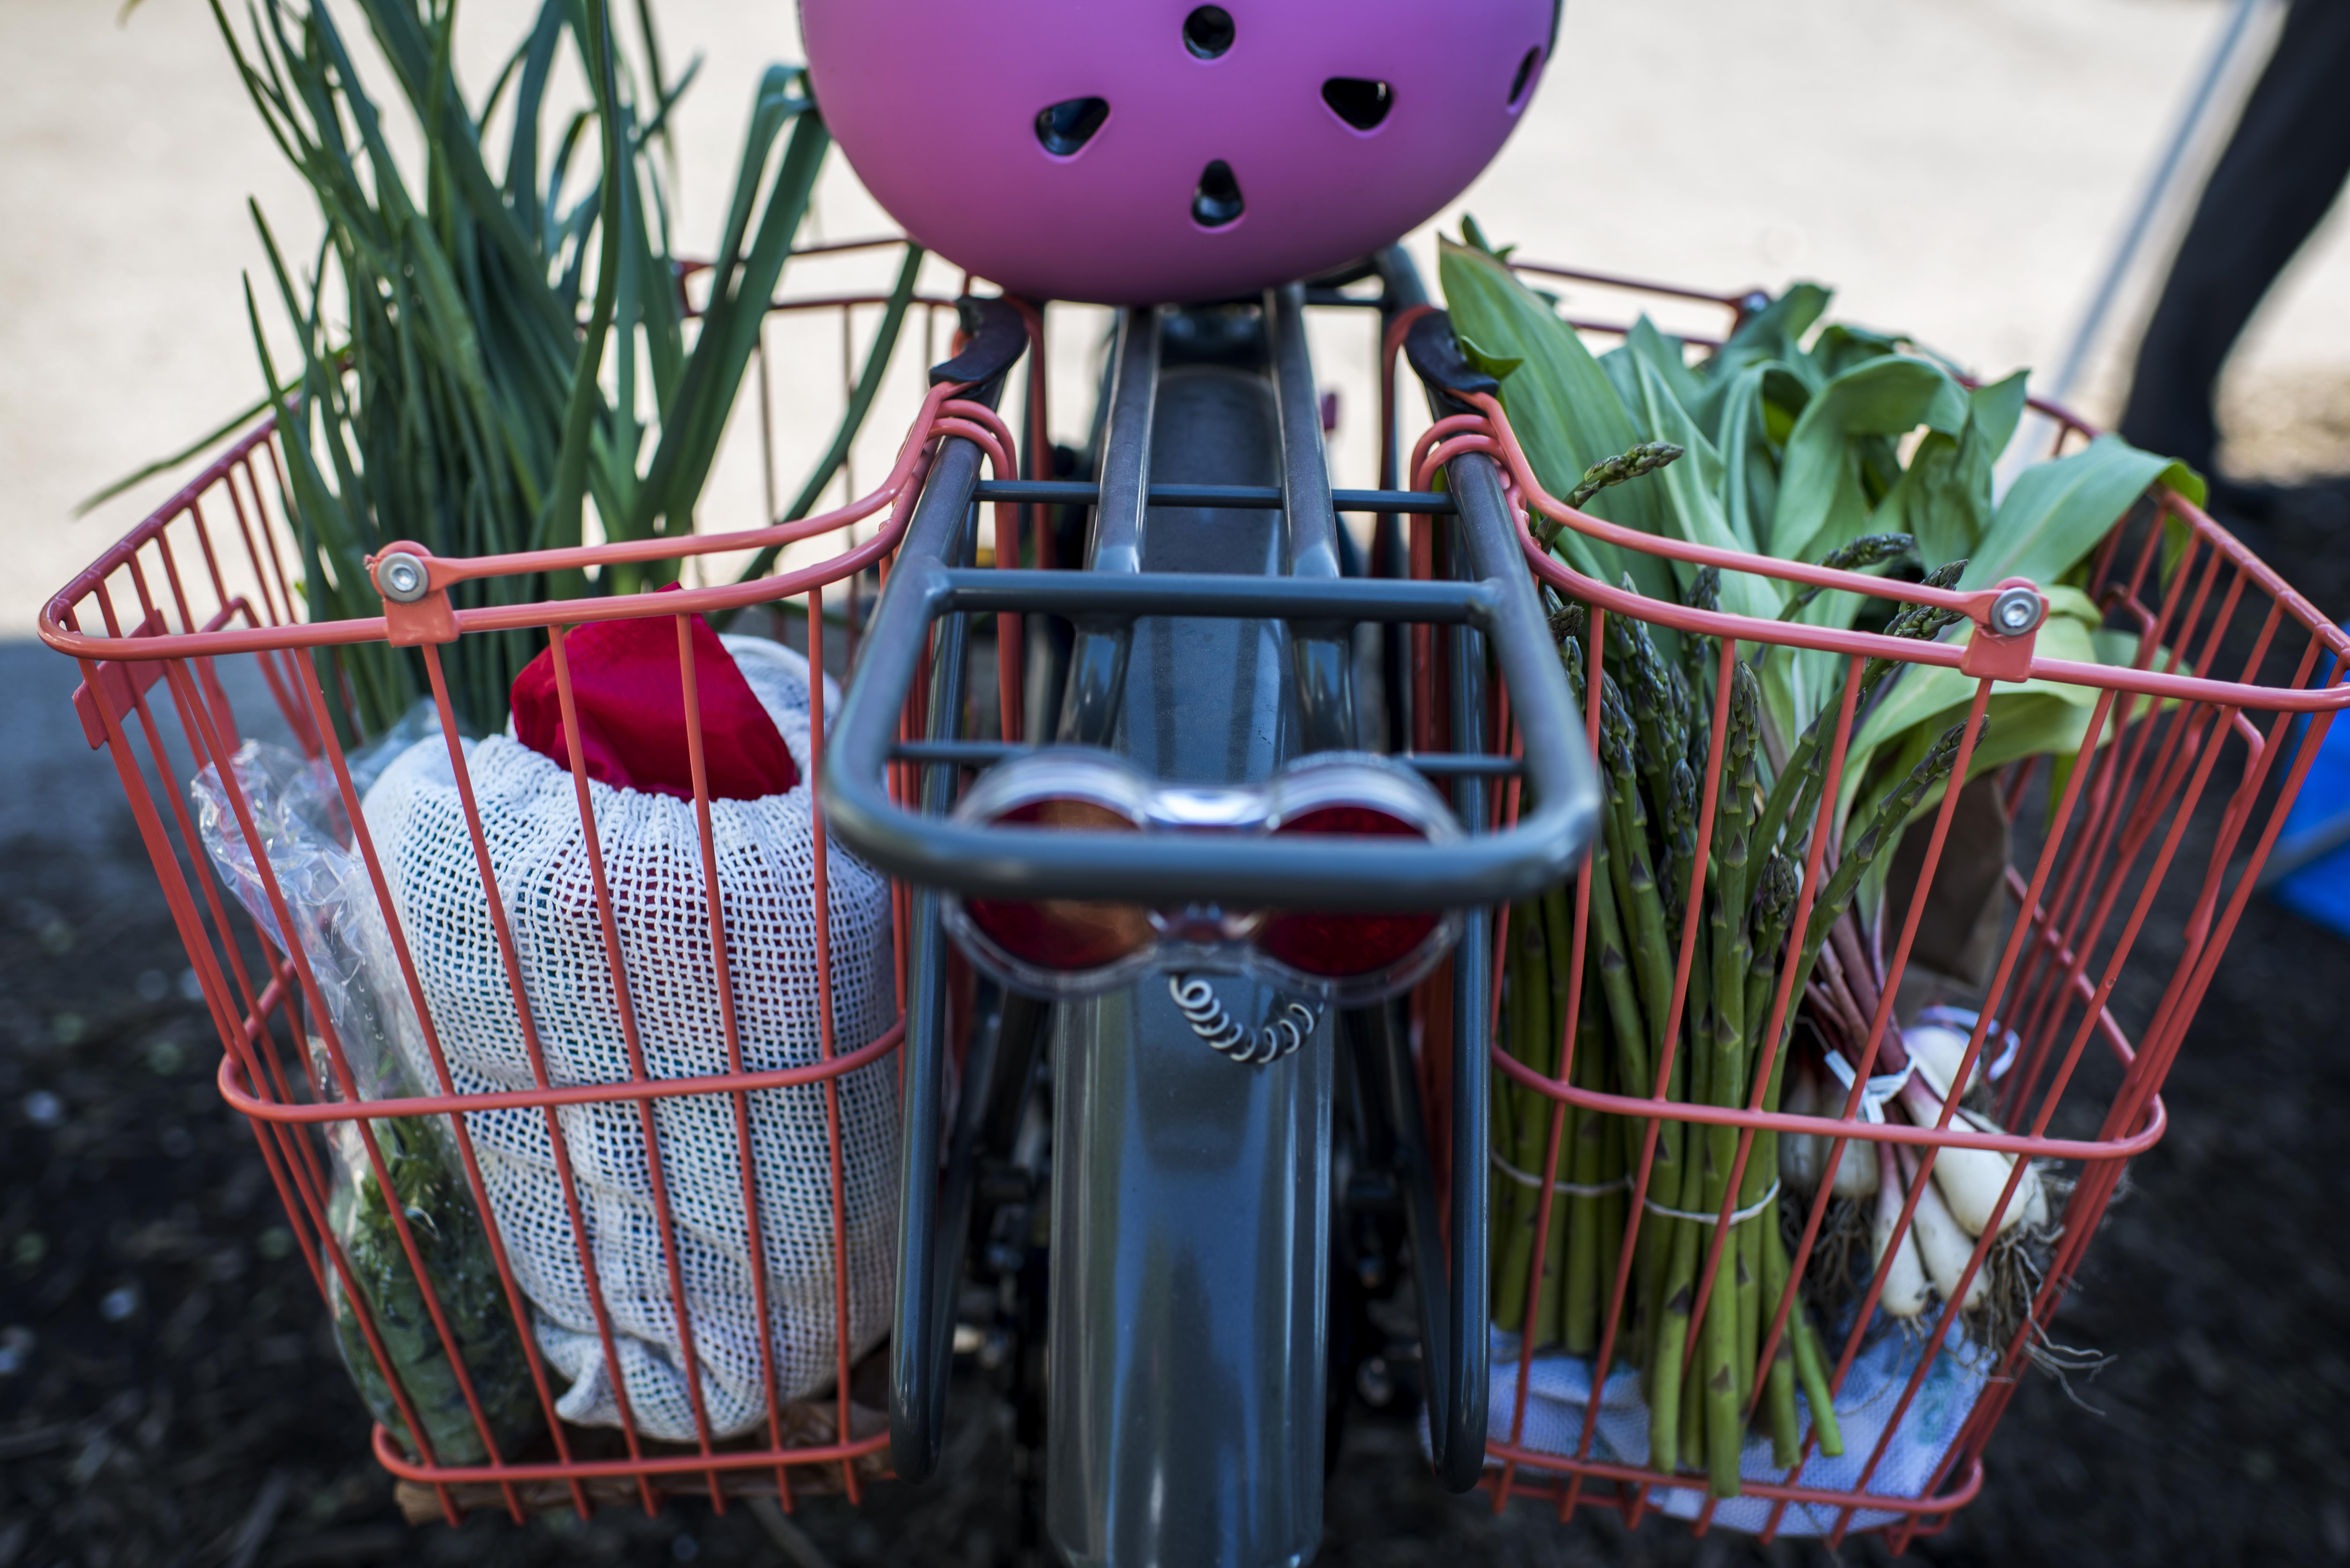 A blue bicycle with two red baskets secured to it. In the red baskets are various market items like produce. There is a pink helmet laying on top of the bicycle.